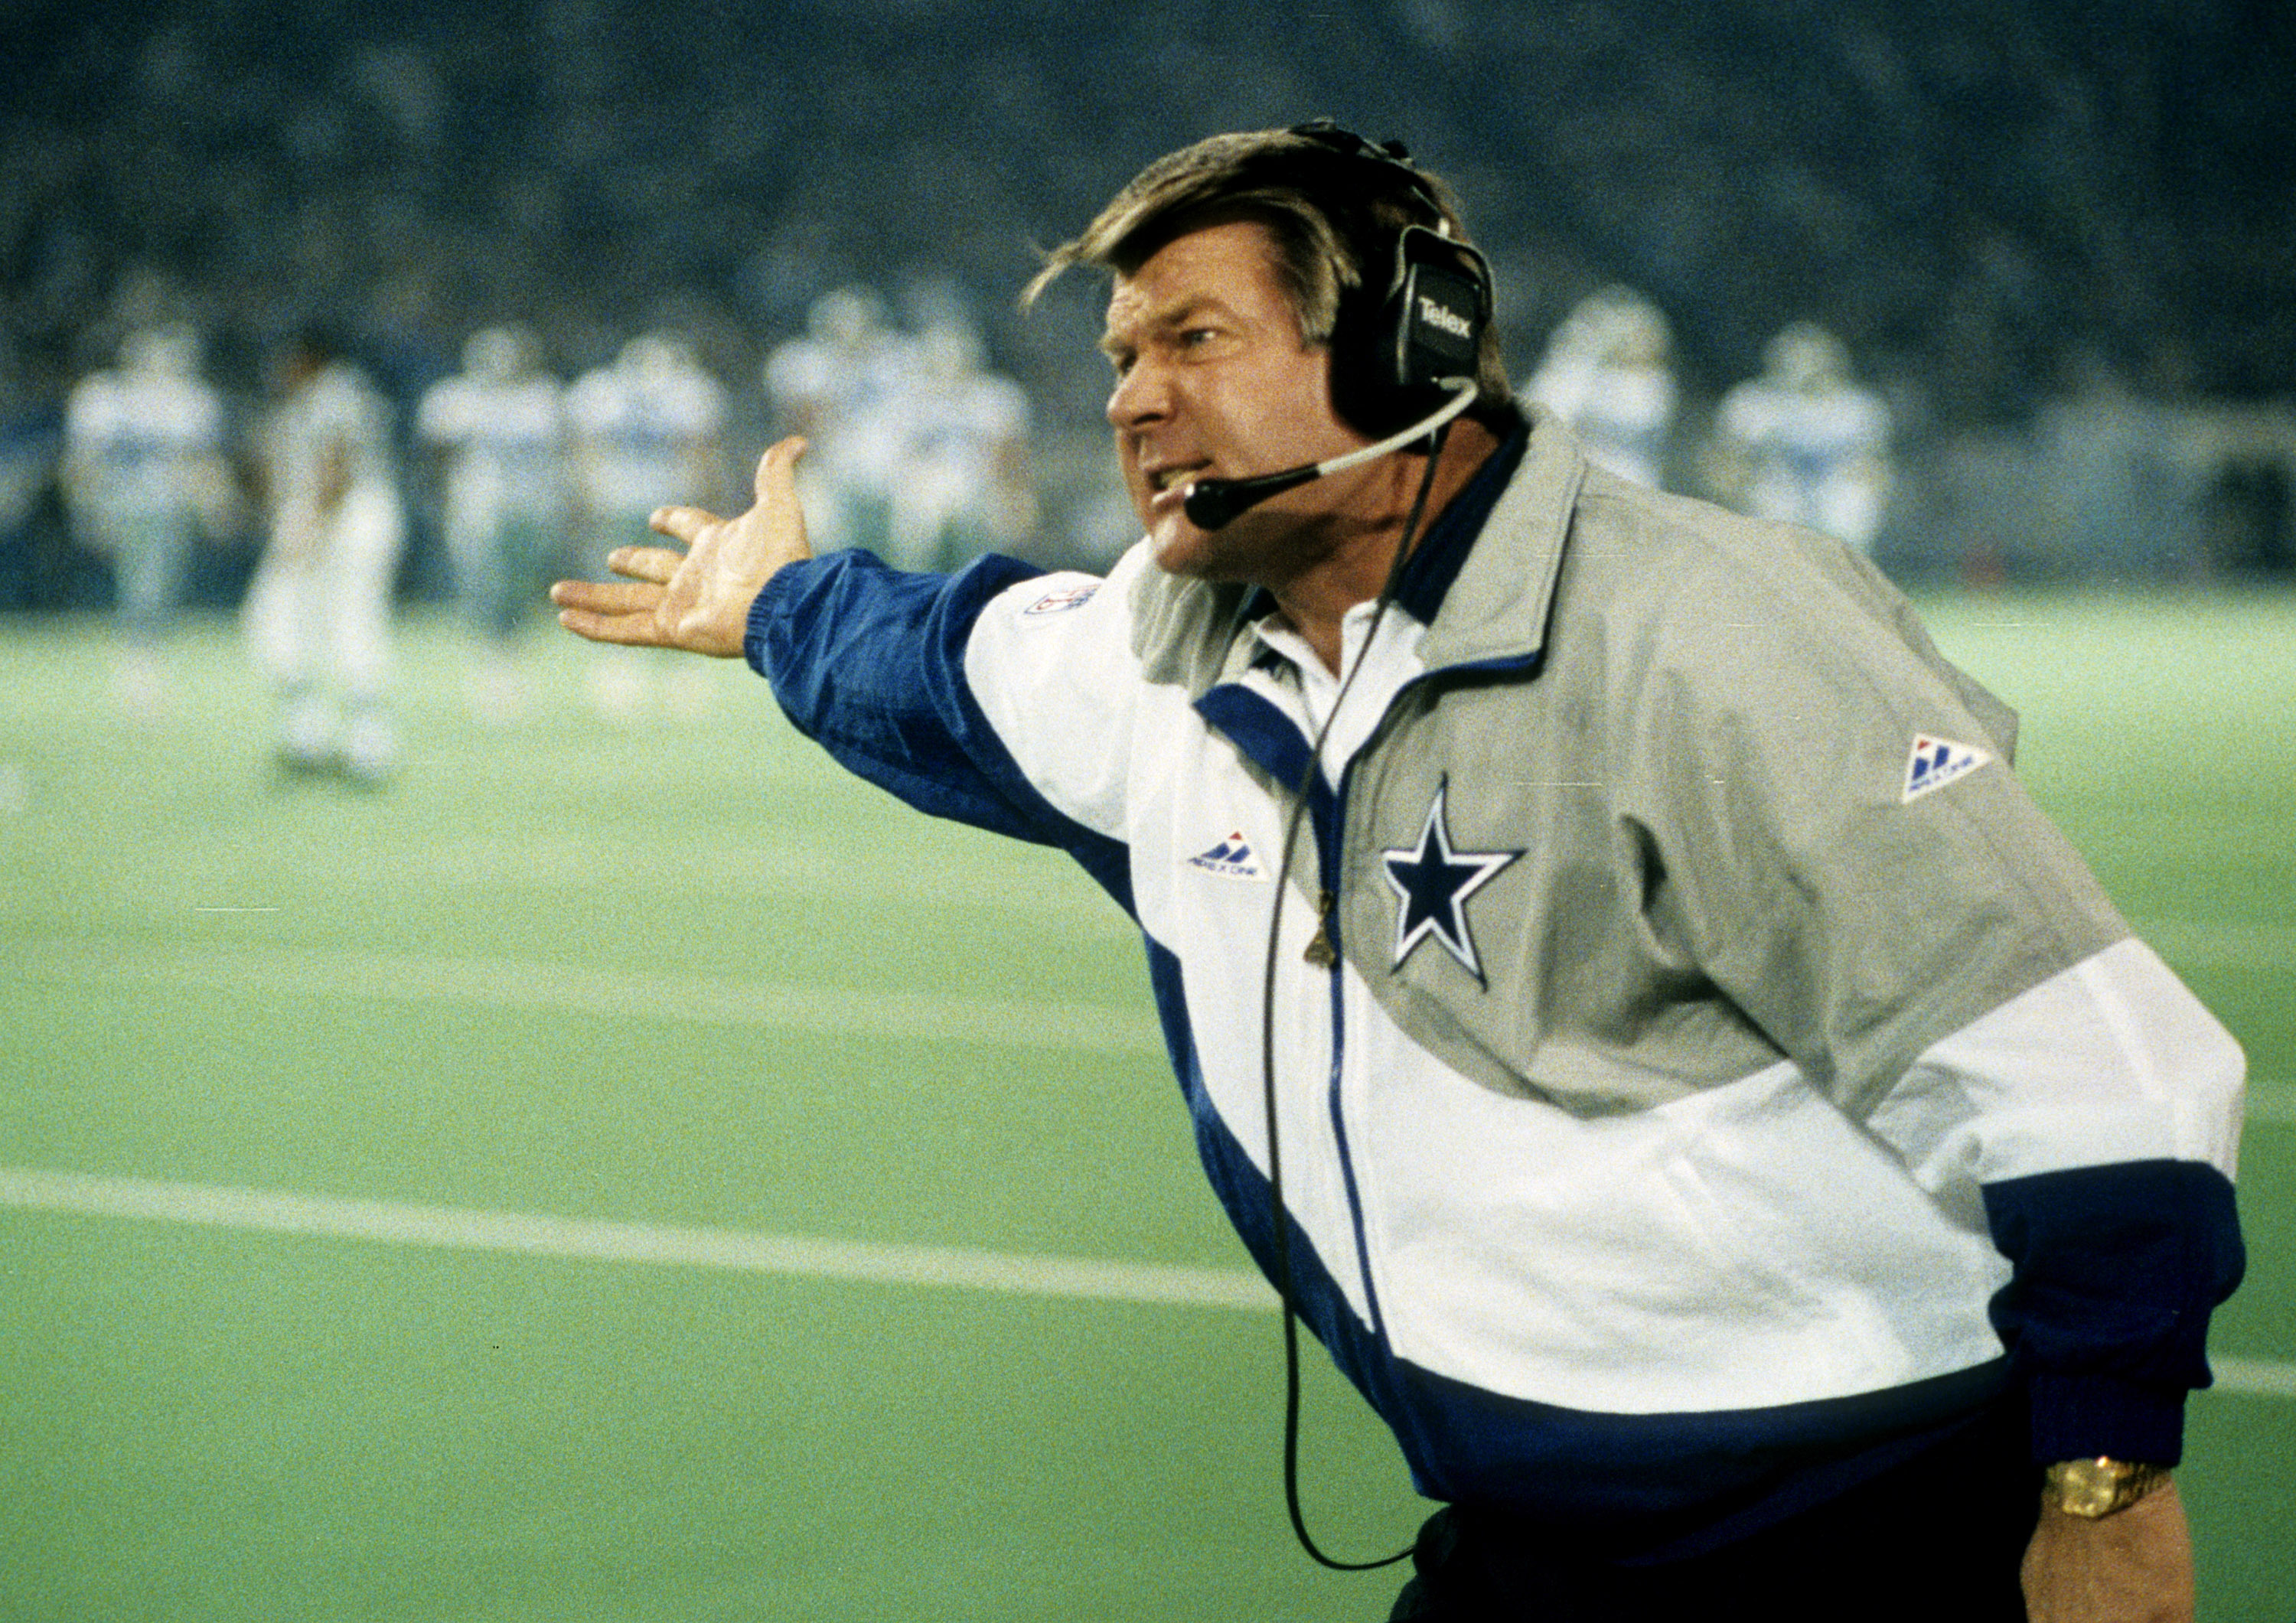 Troy Aikman Describes the Hilarious Way He and Jimmy Johnson Played Good Cop/Bad Cop With the Cowboys